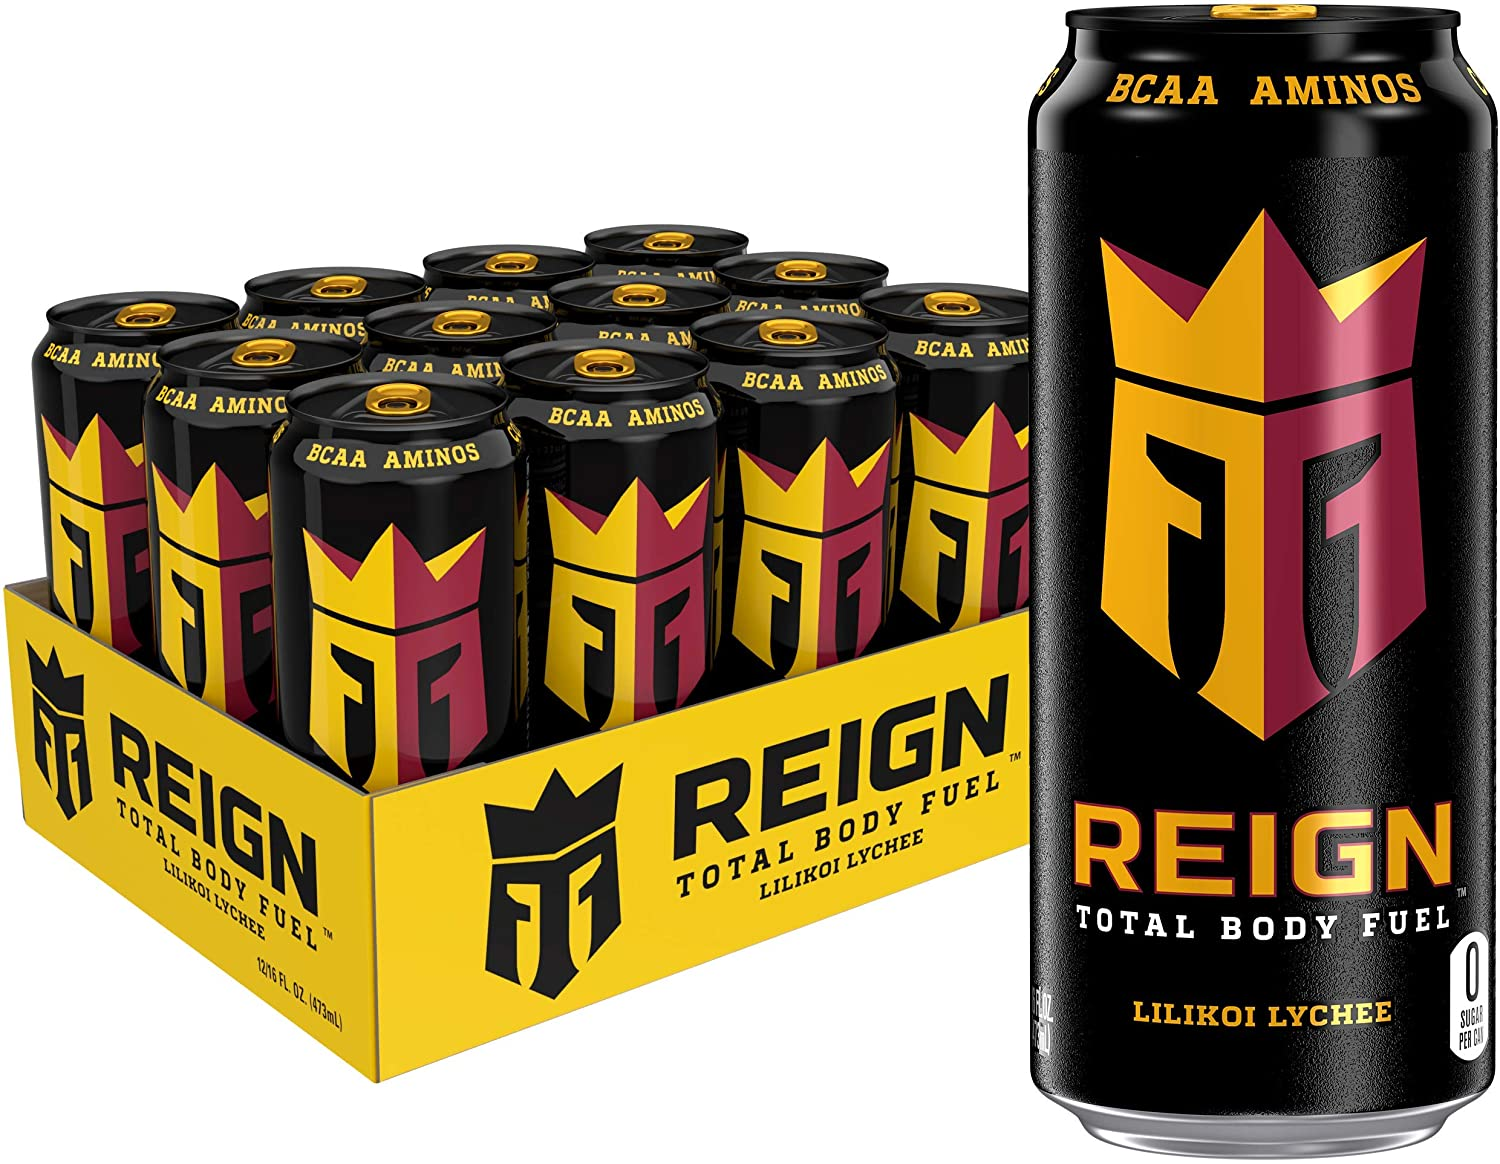 Reign Total Body Fuel, Lilikoi Lychee, Fitness & Performance Drink, 16 Fl Oz (Pack of 12)